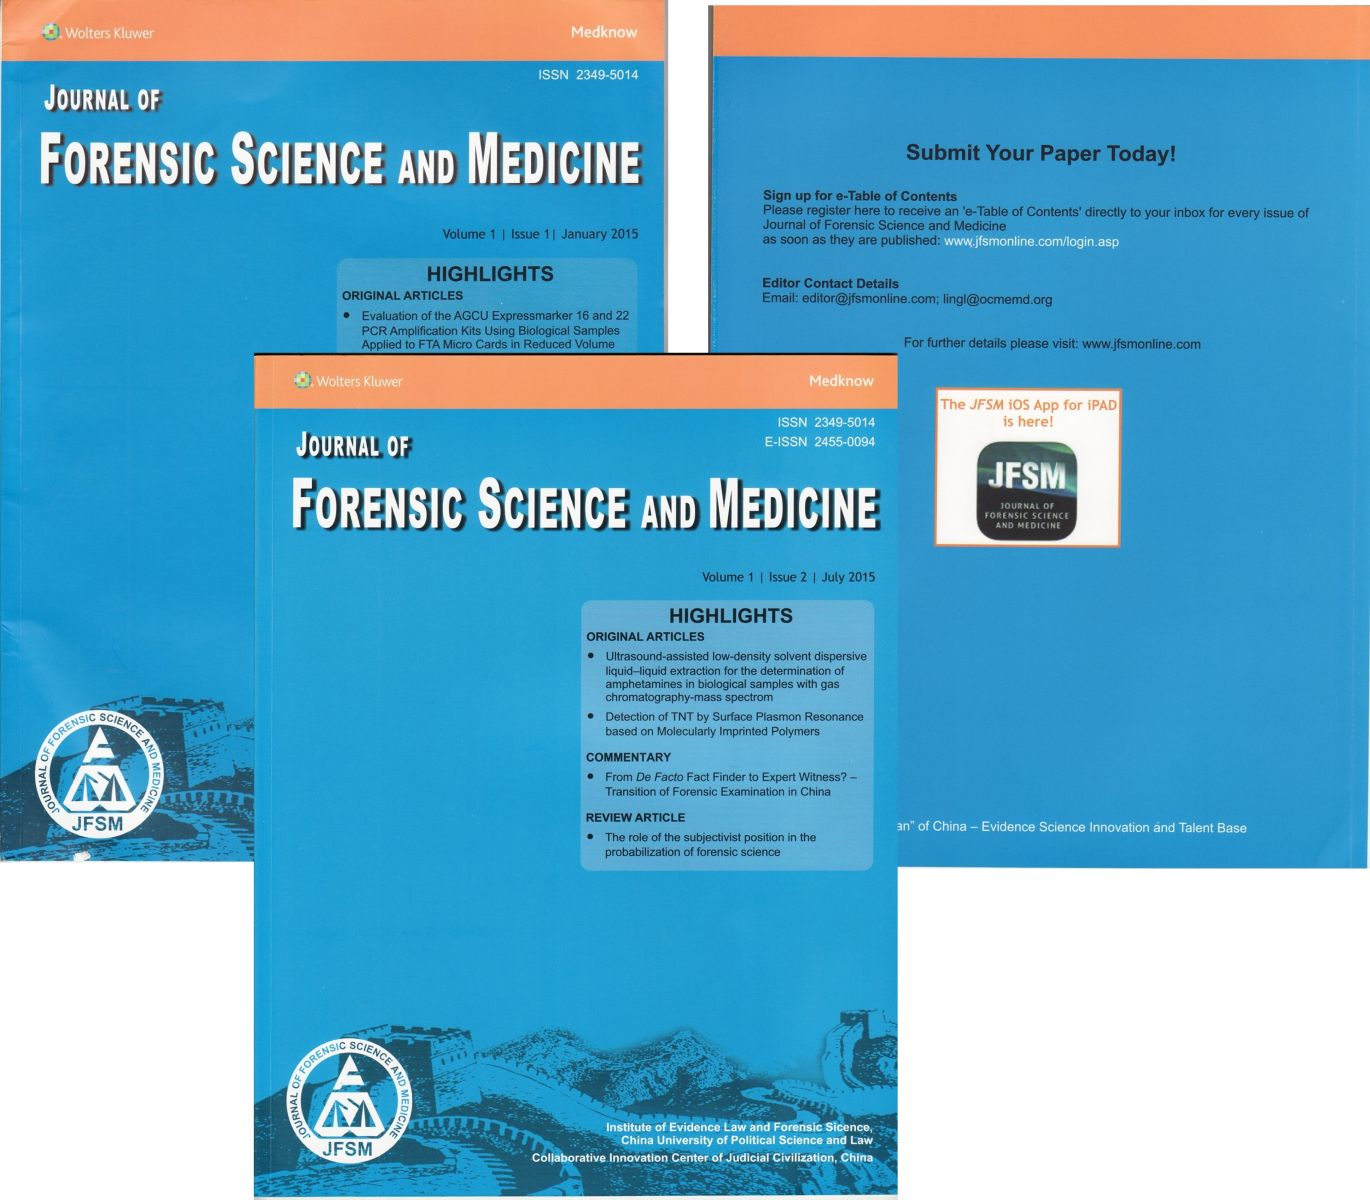 Launching A New Journal Journal Of Forensic Science And Medicine 中国政法大学证据科学研究院